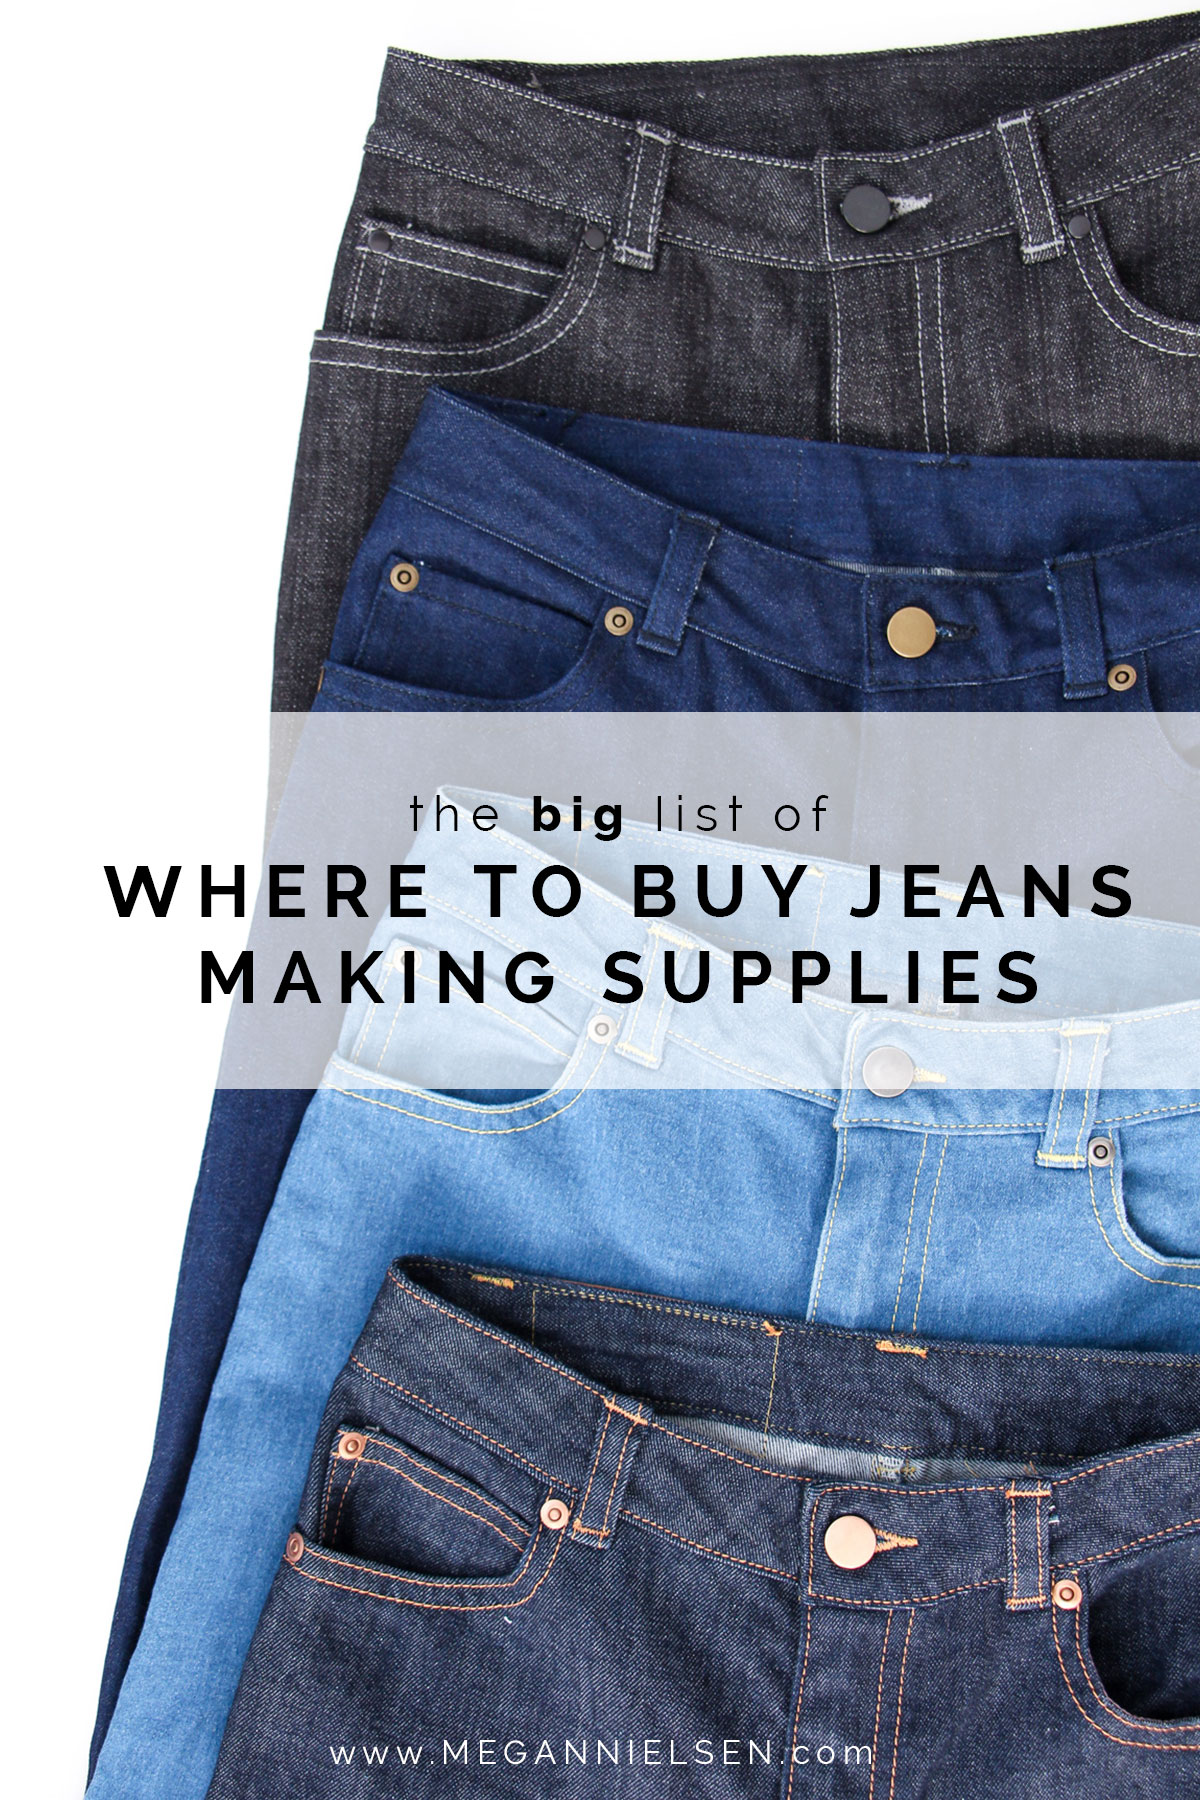 the big list of where to buy jeans making supplies megan nielsen